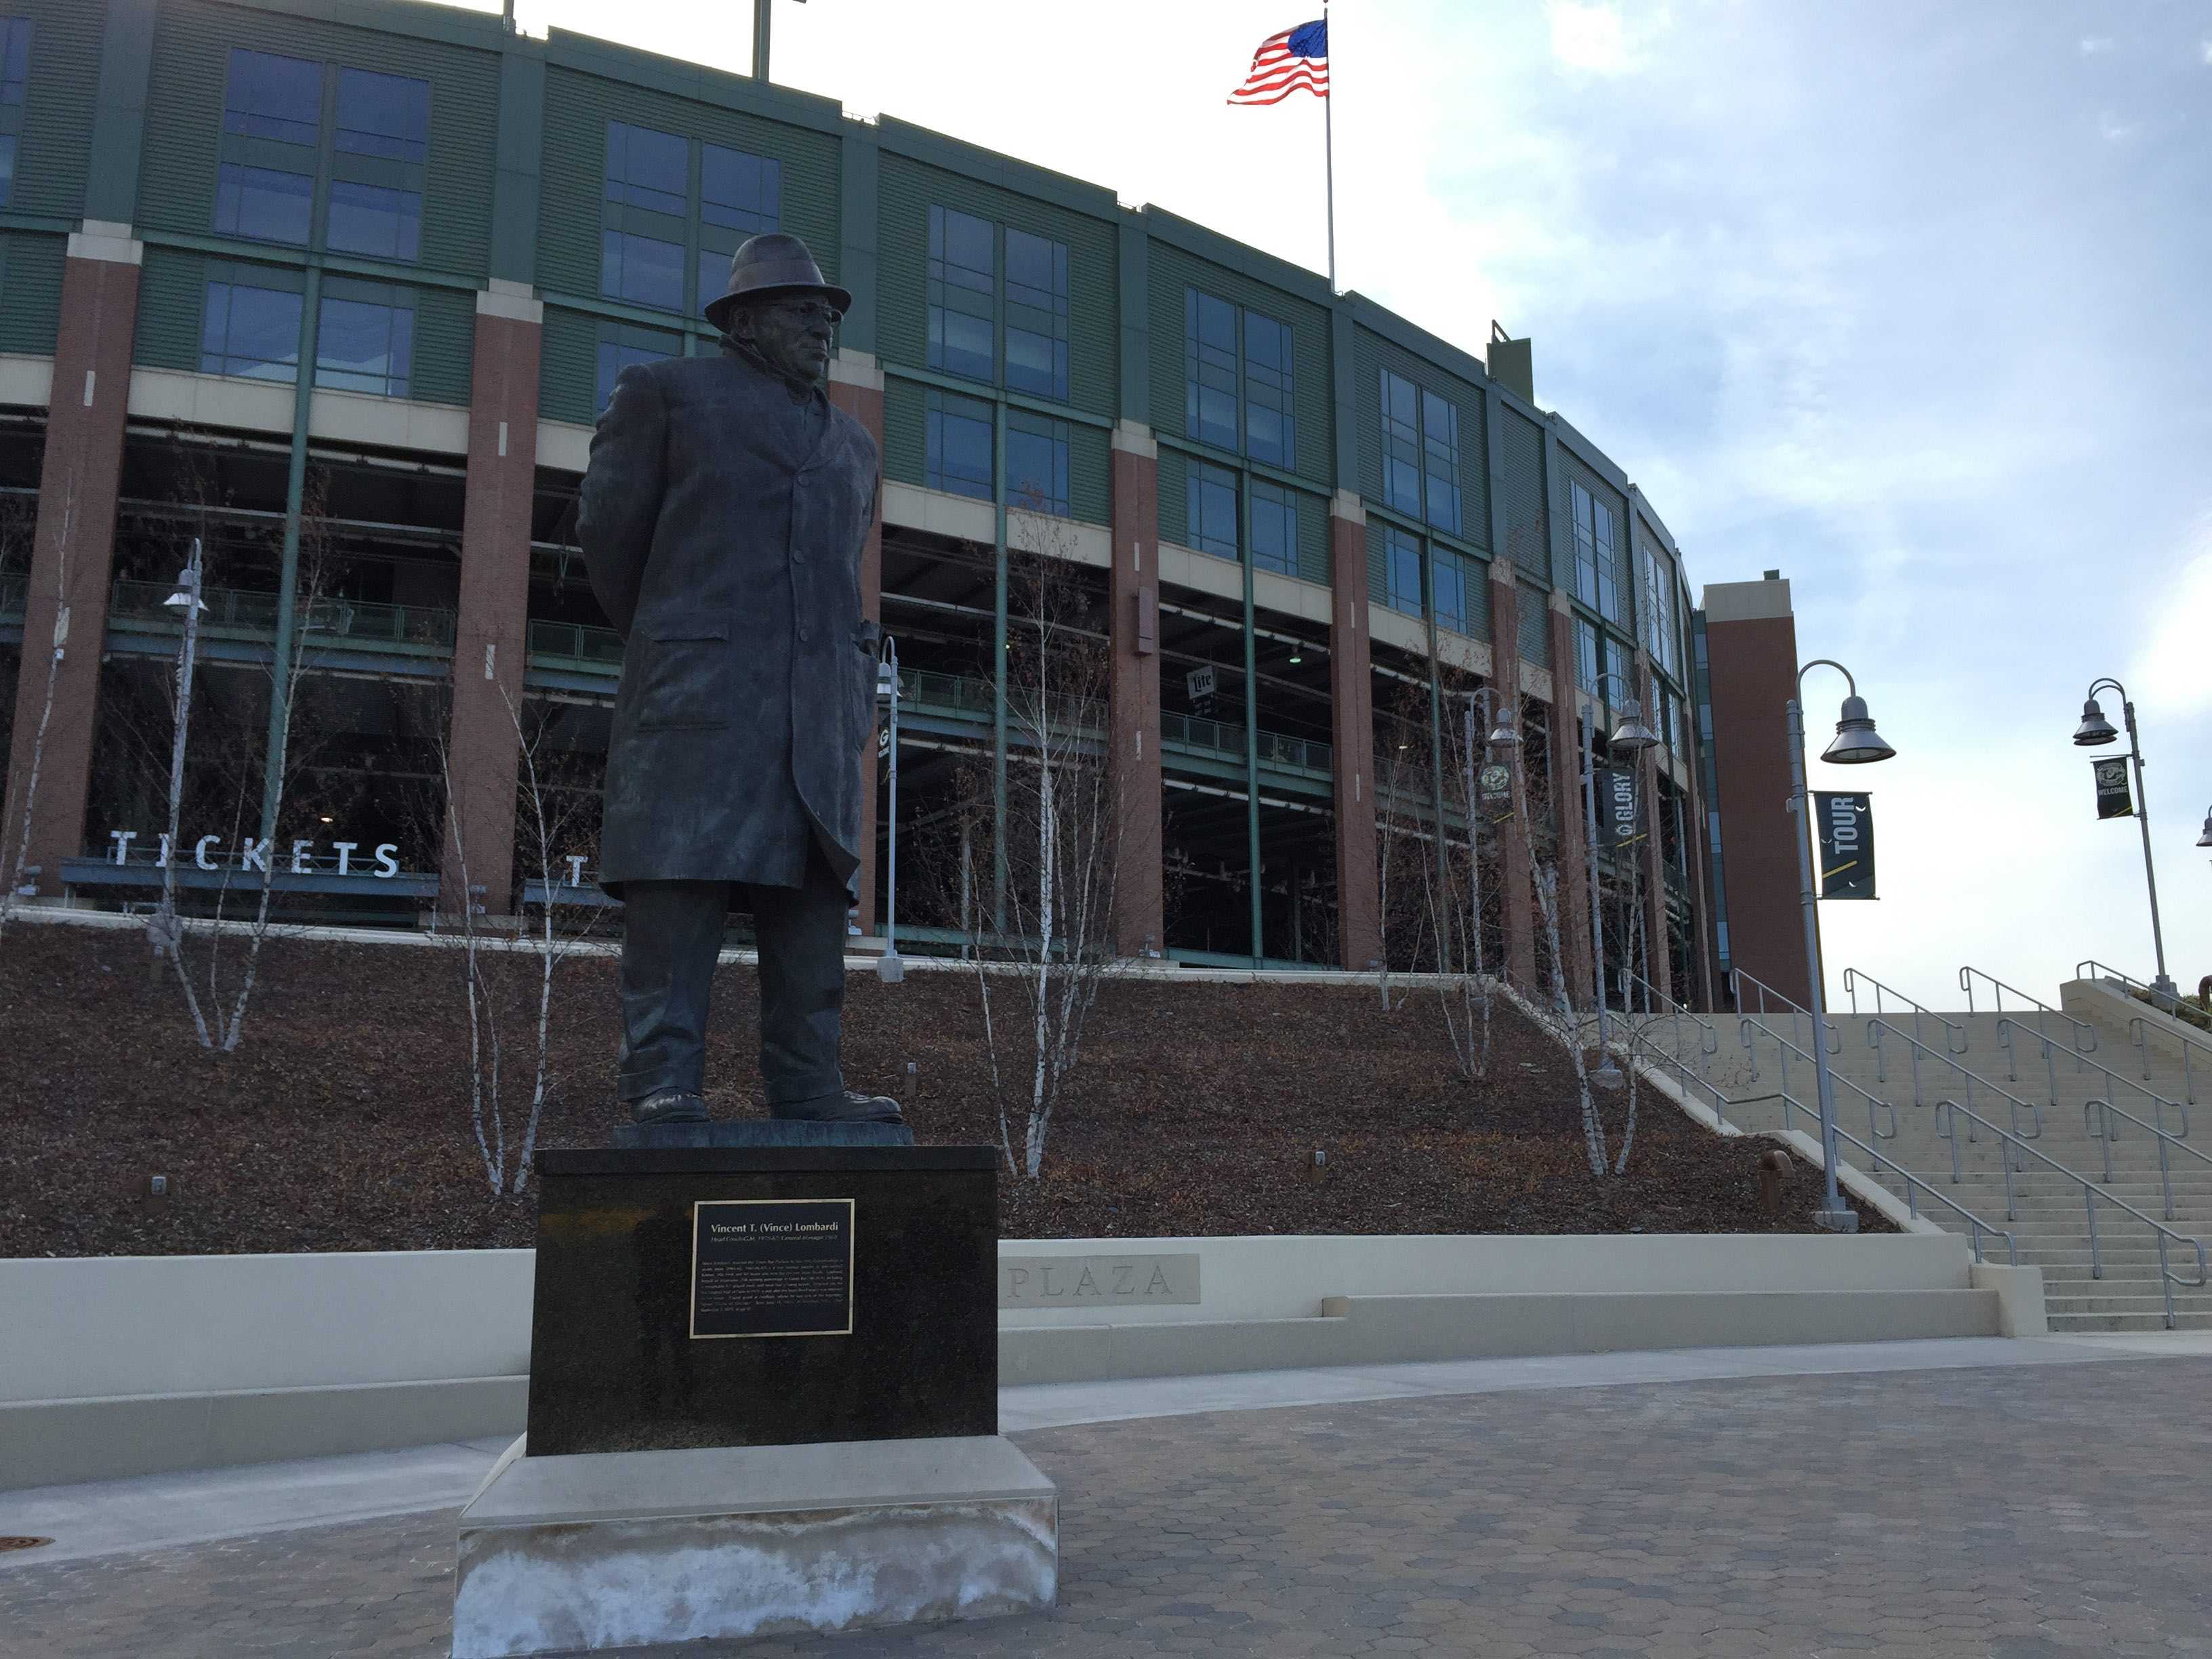 A statue of famous Packers head coach Vince Lombardi stands outside Lambeau Field in Caroline's hometown of Green Bay.